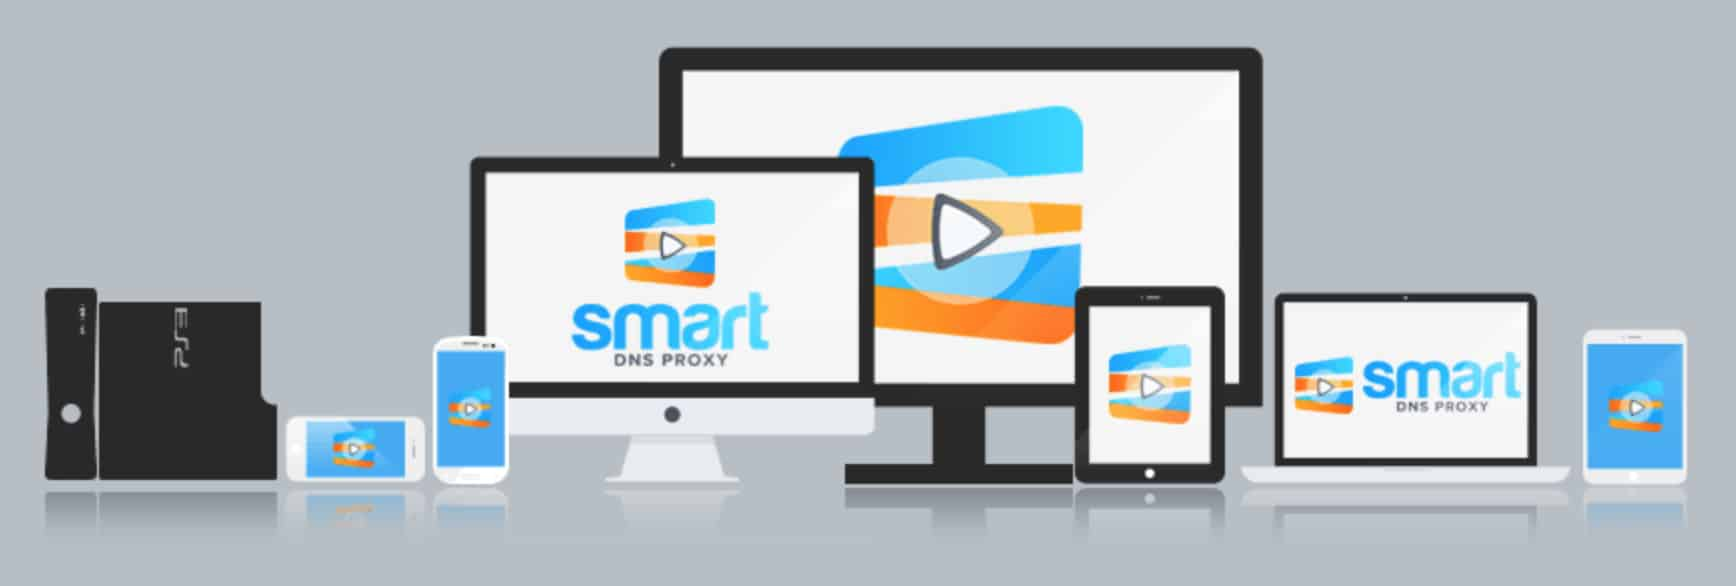 SmartDNSProxy - Devices